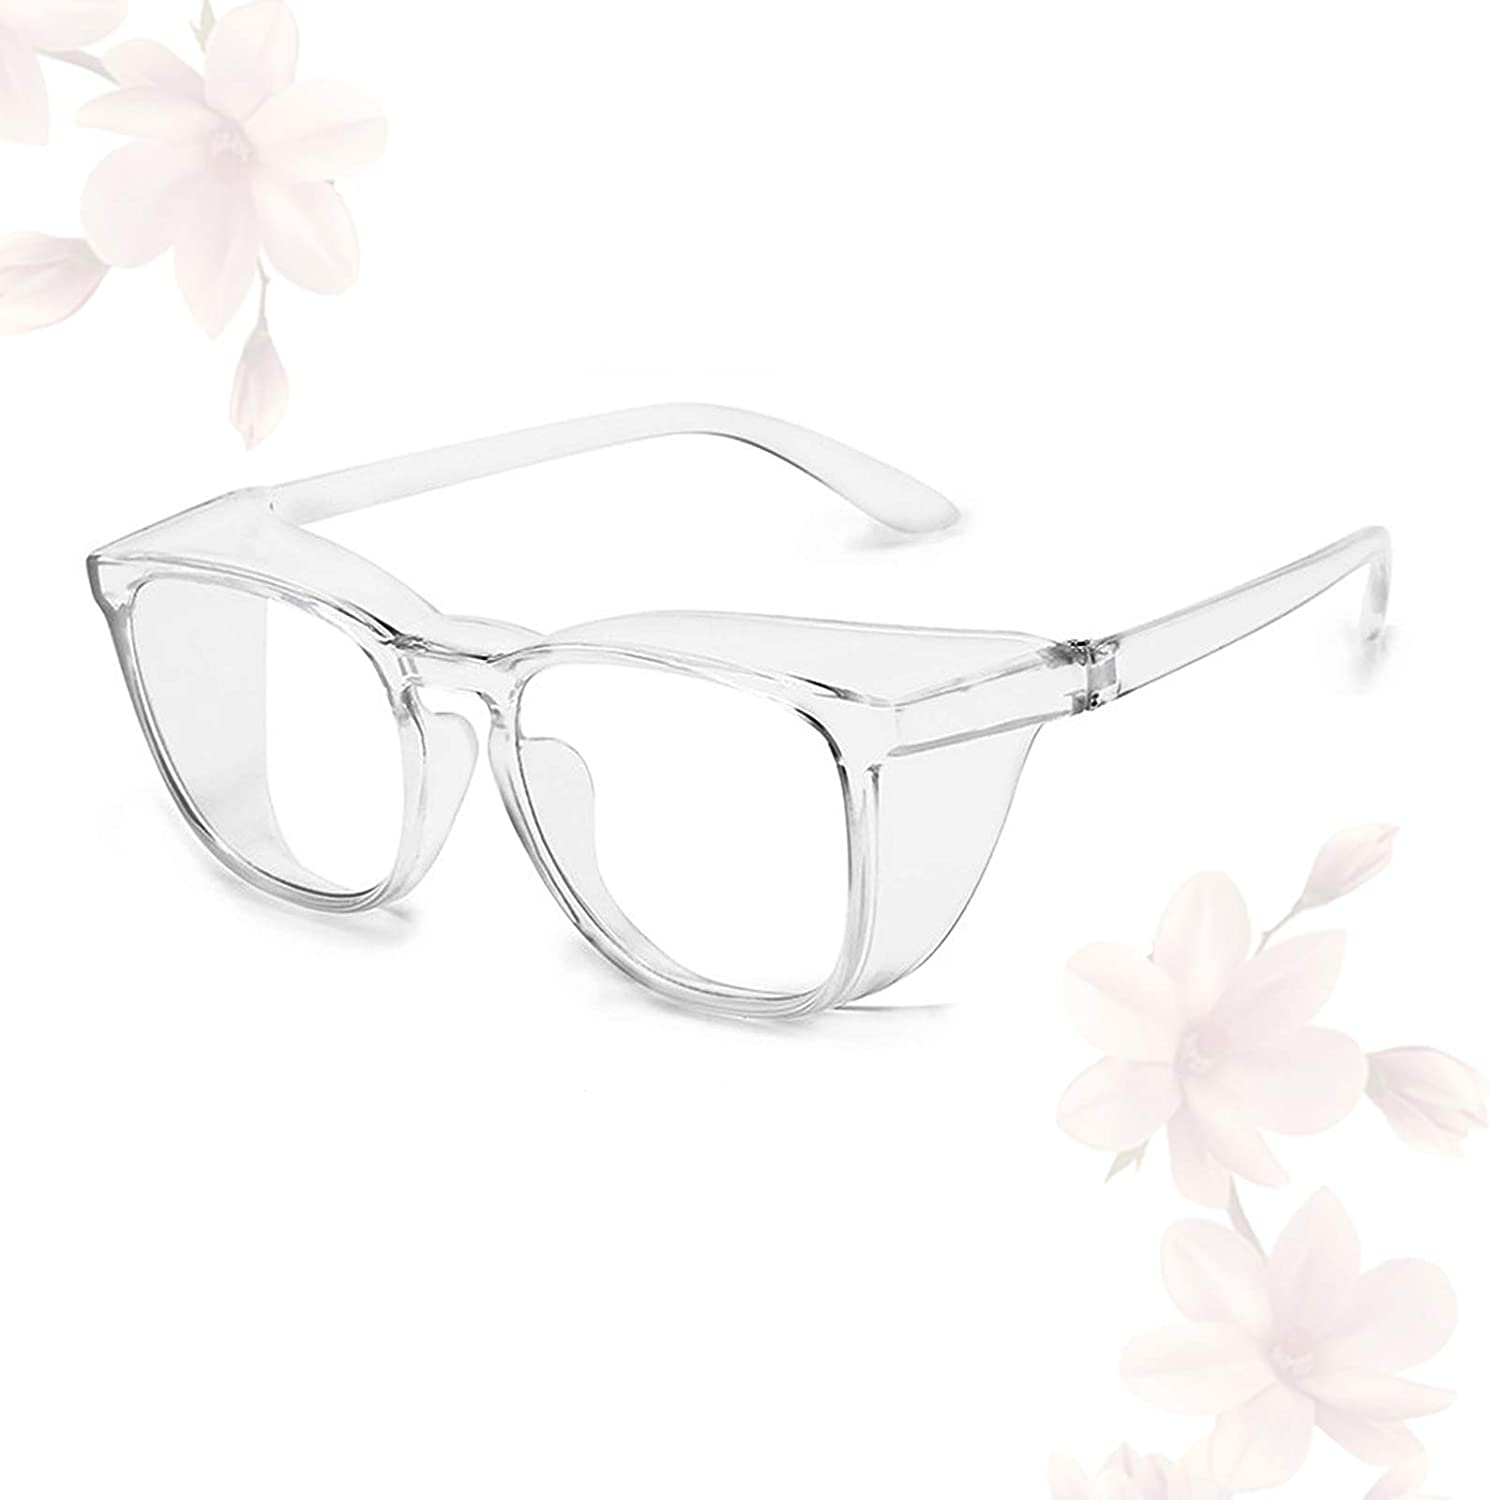 Anti Fog Safety Goggles Blue Light Blocking Protective Glasses for Women Men Fog-Proof Anti Scratch Eye Protection,Clear